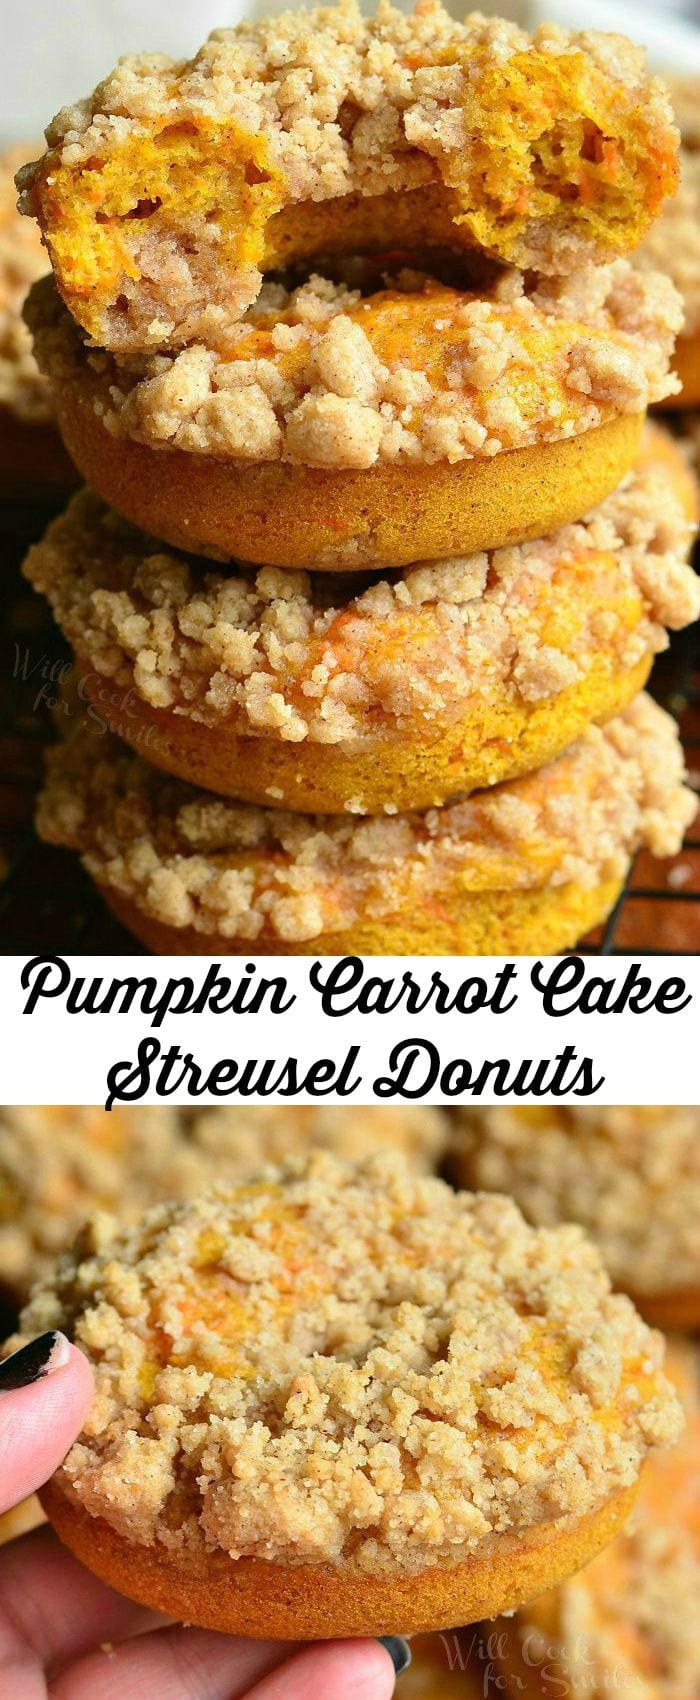 Pumpkin Carrot Cake Streusel Donuts | from willcookforsmiles.com #carrotcake #breakfast #donut